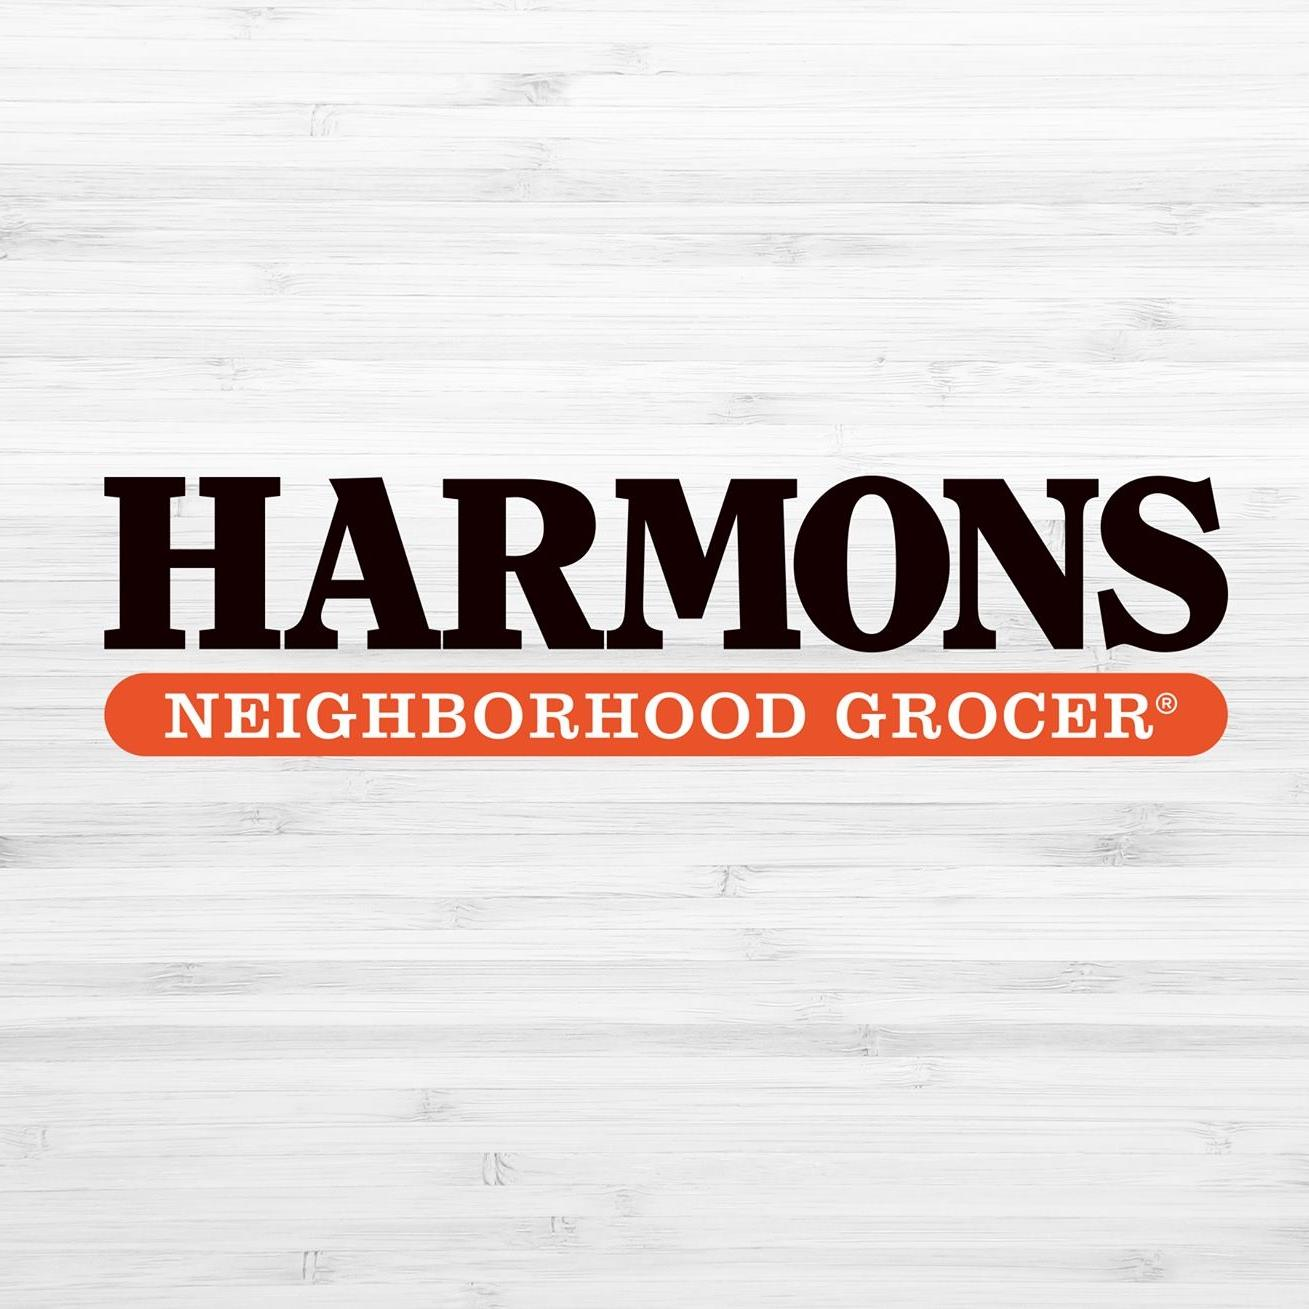 Retailer Shout Out: Harmons Neighborhood Grocer